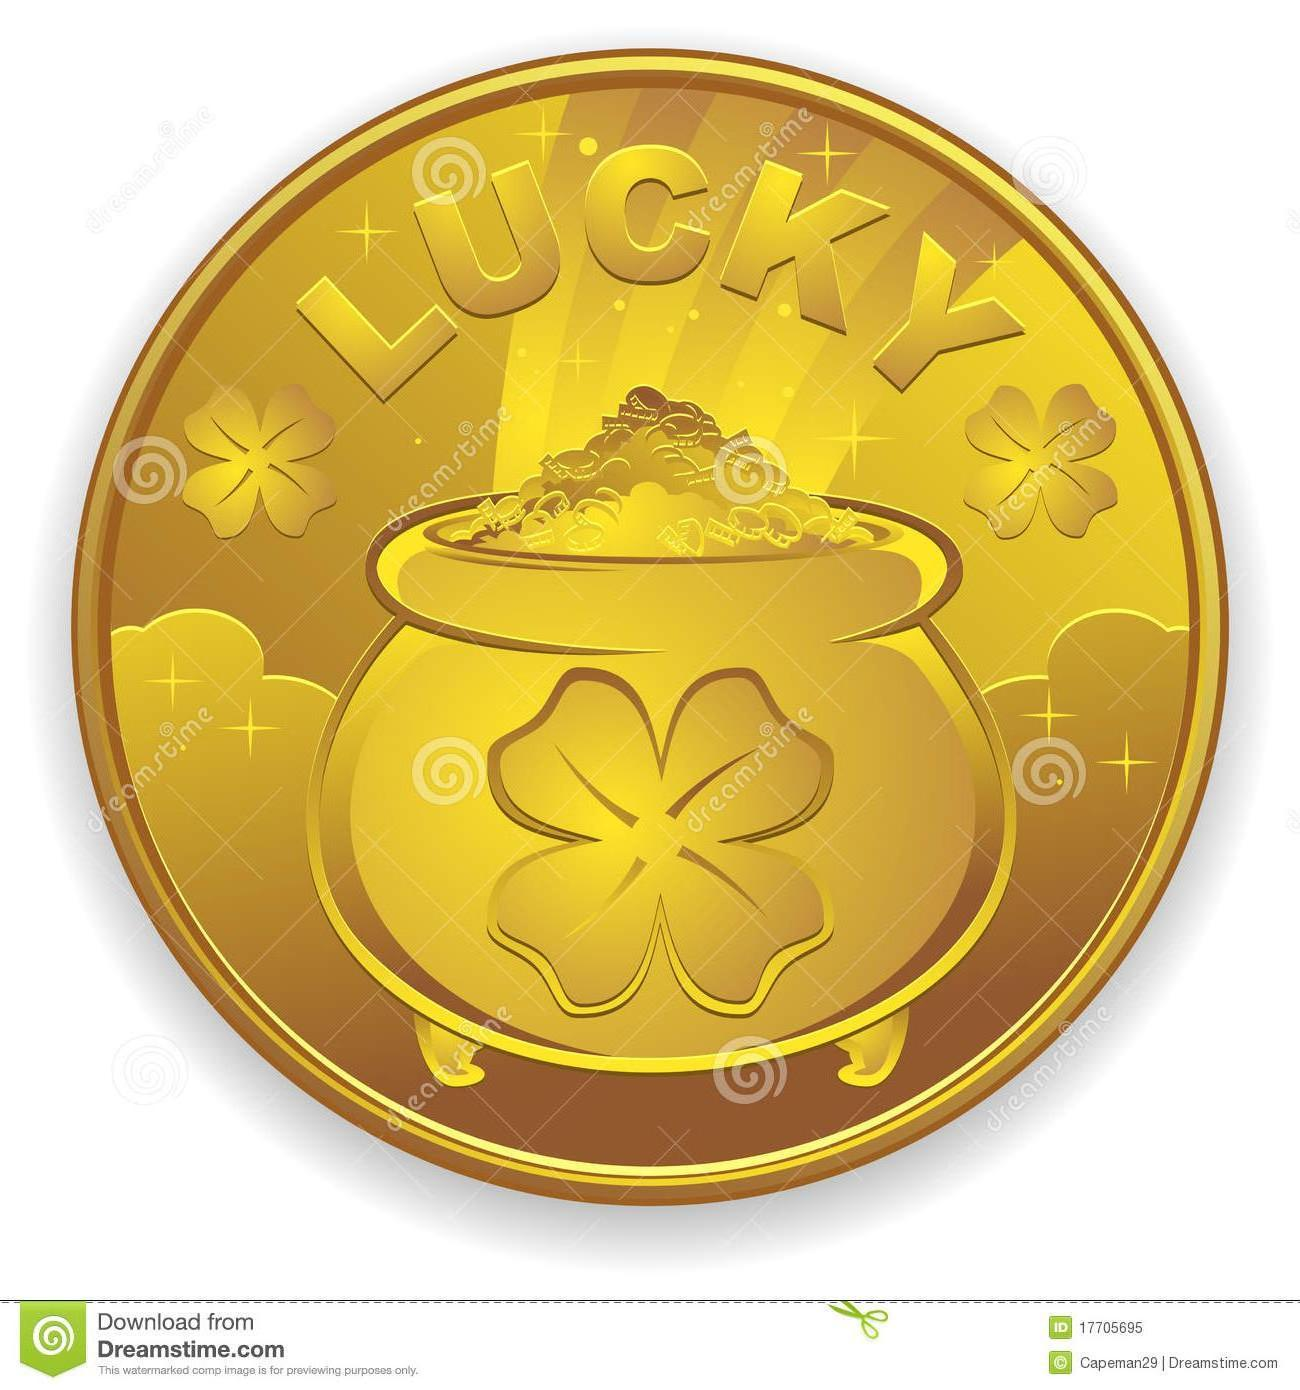 Chinese coin clipart picture royalty free Chinese coin clipart 3 » Clipart Portal picture royalty free